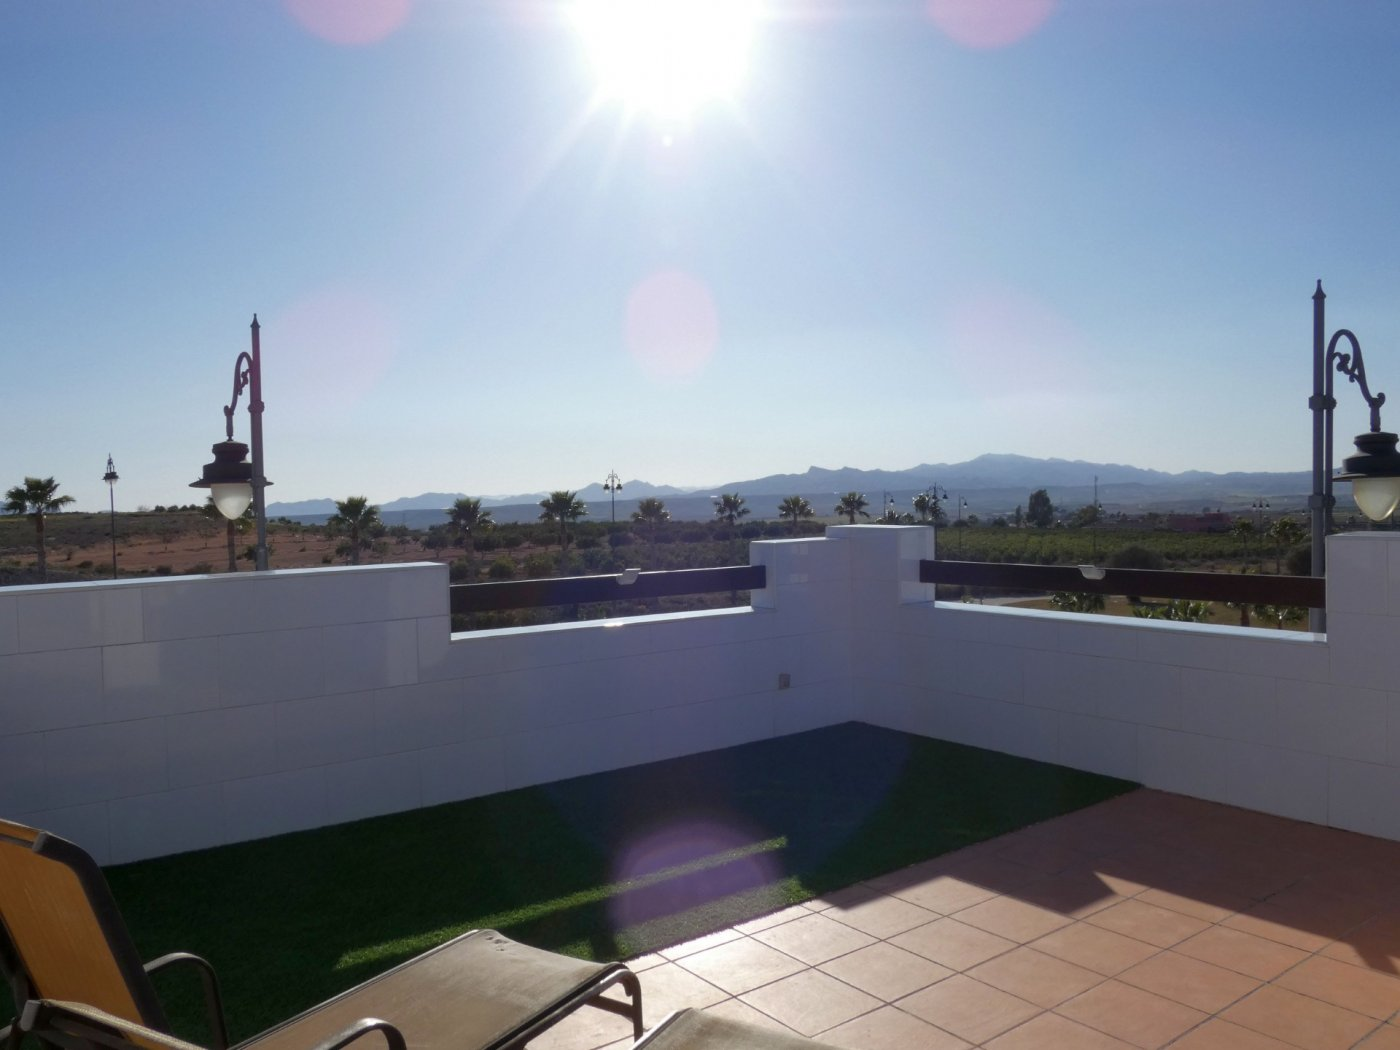 Apartment ref 3197 für sale in Condado De Alhama Spanien - Quality Homes Costa Cálida